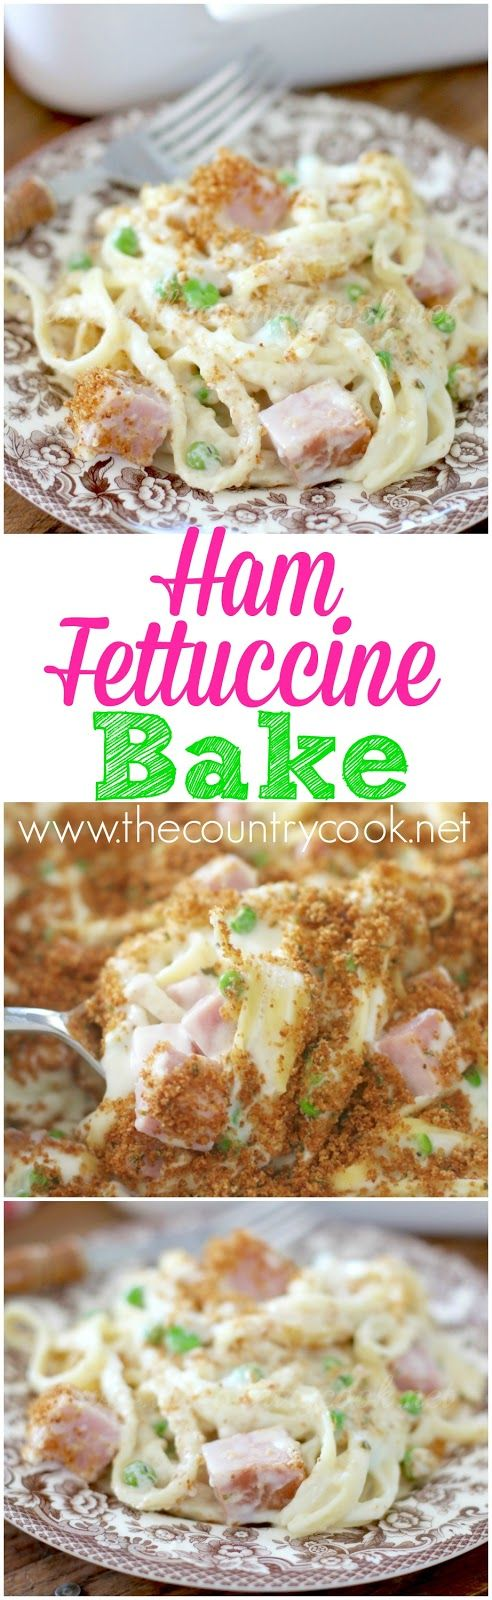 Ham Fettuccine Bake recipe from The Country Cook